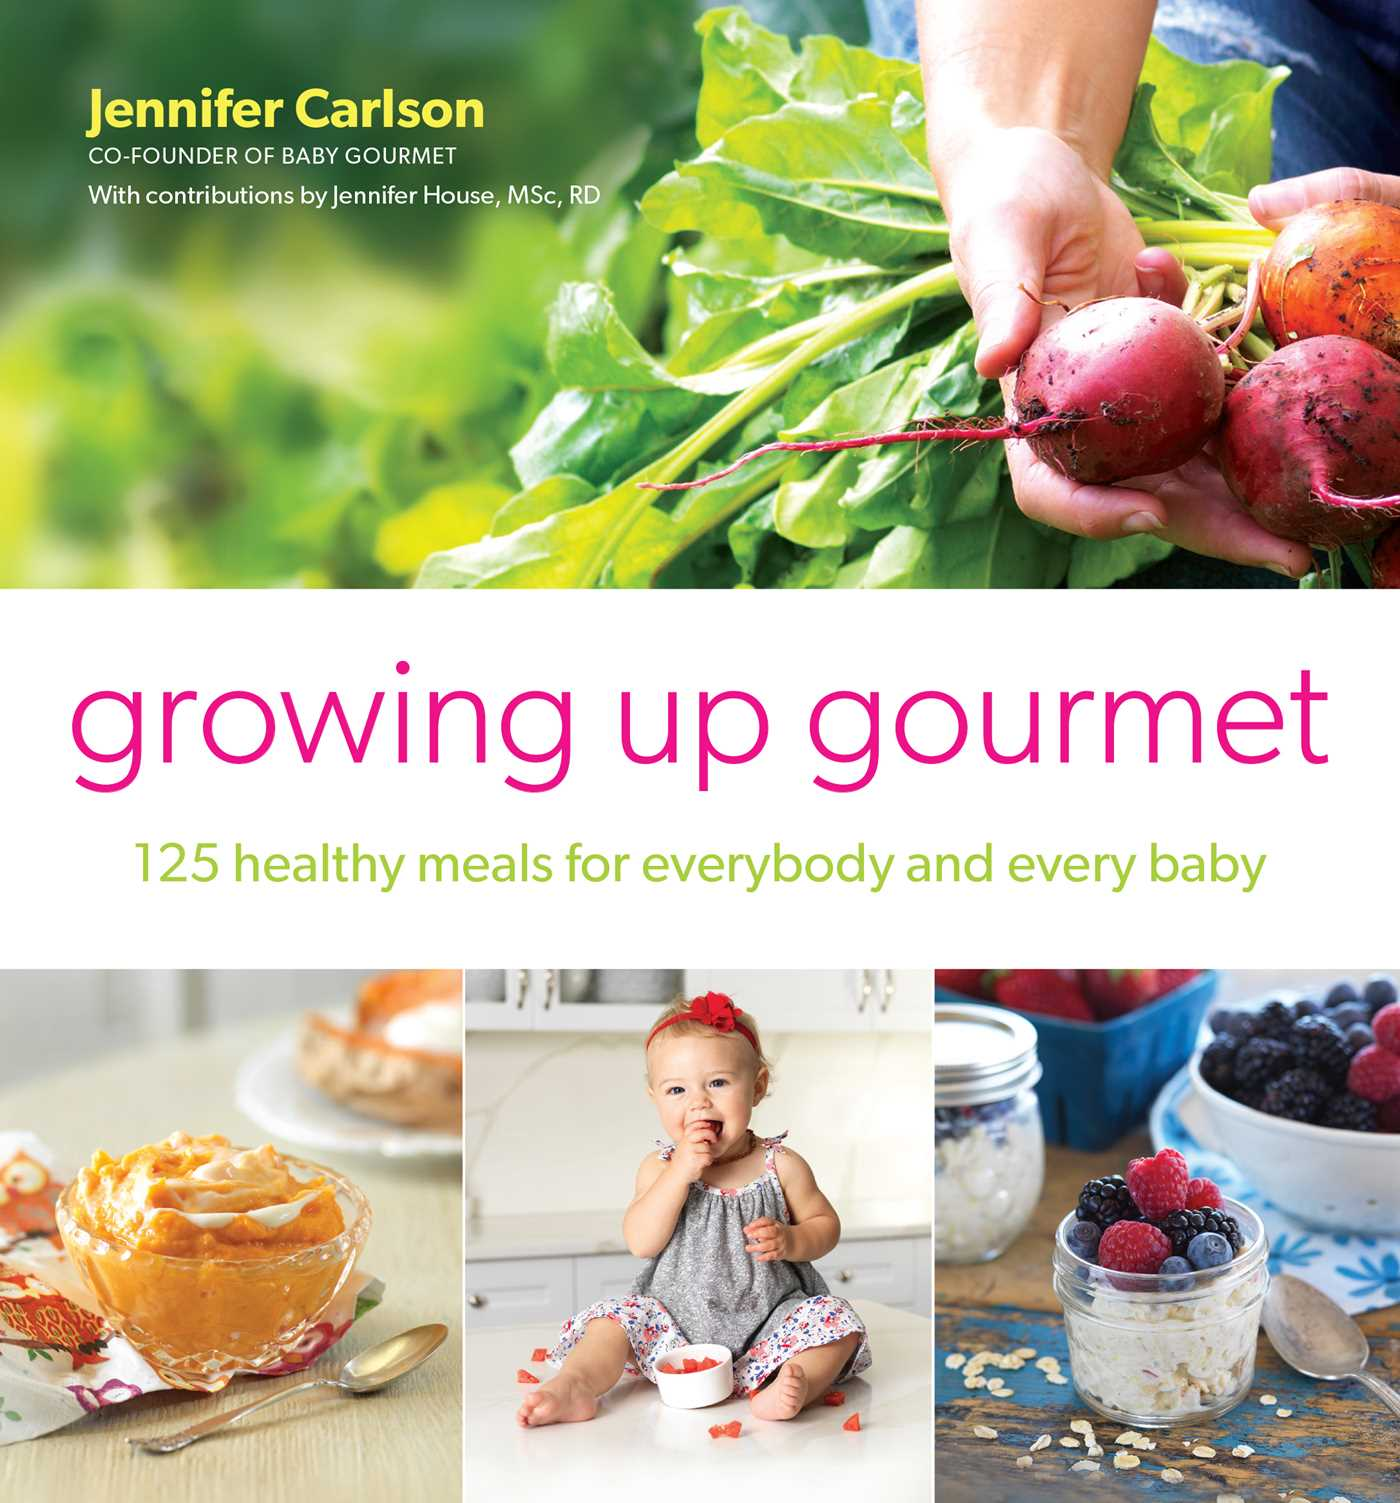 Growing up gourmet 9781501110559 hr